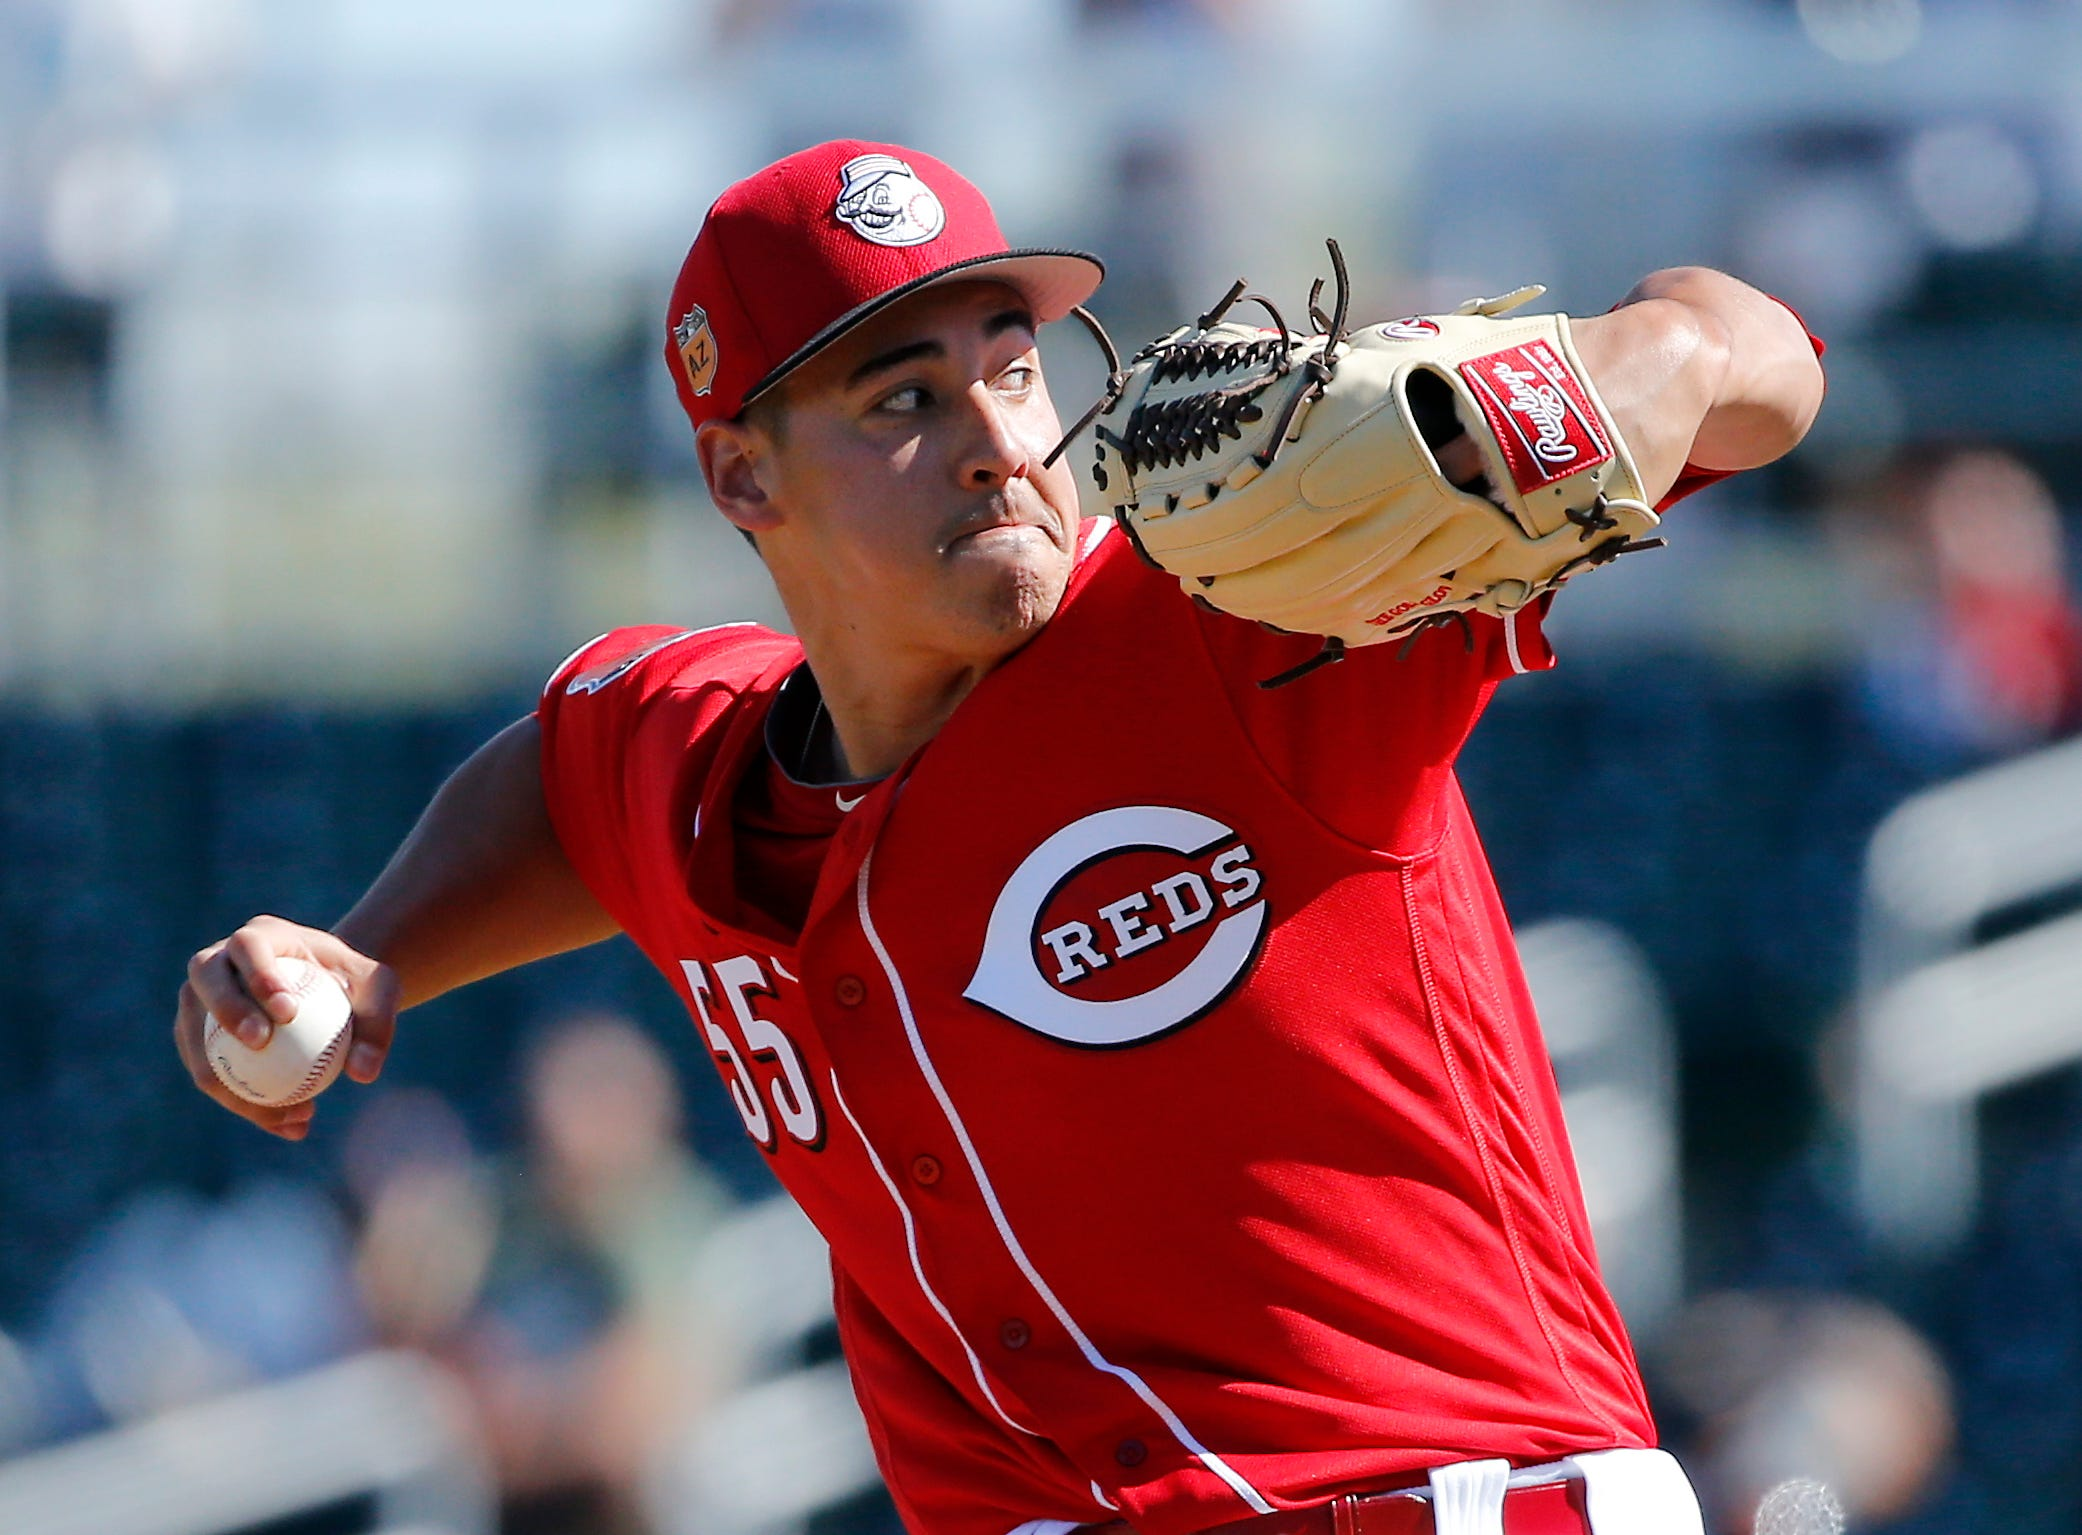 Game report: Cubs 11, Reds 7